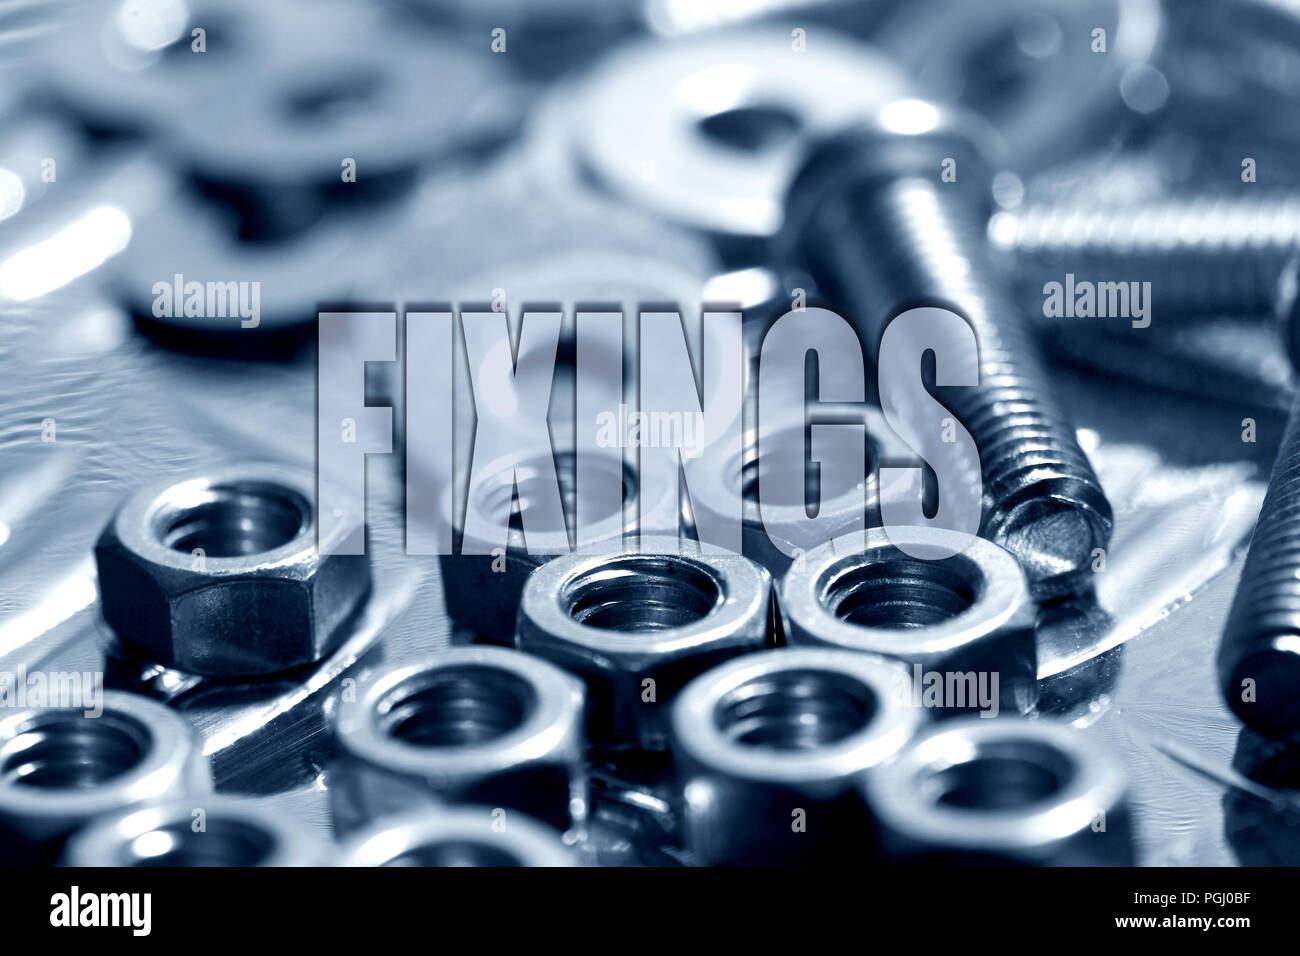 Fixings written on top of nuts and bolts in blue background - Stock Image